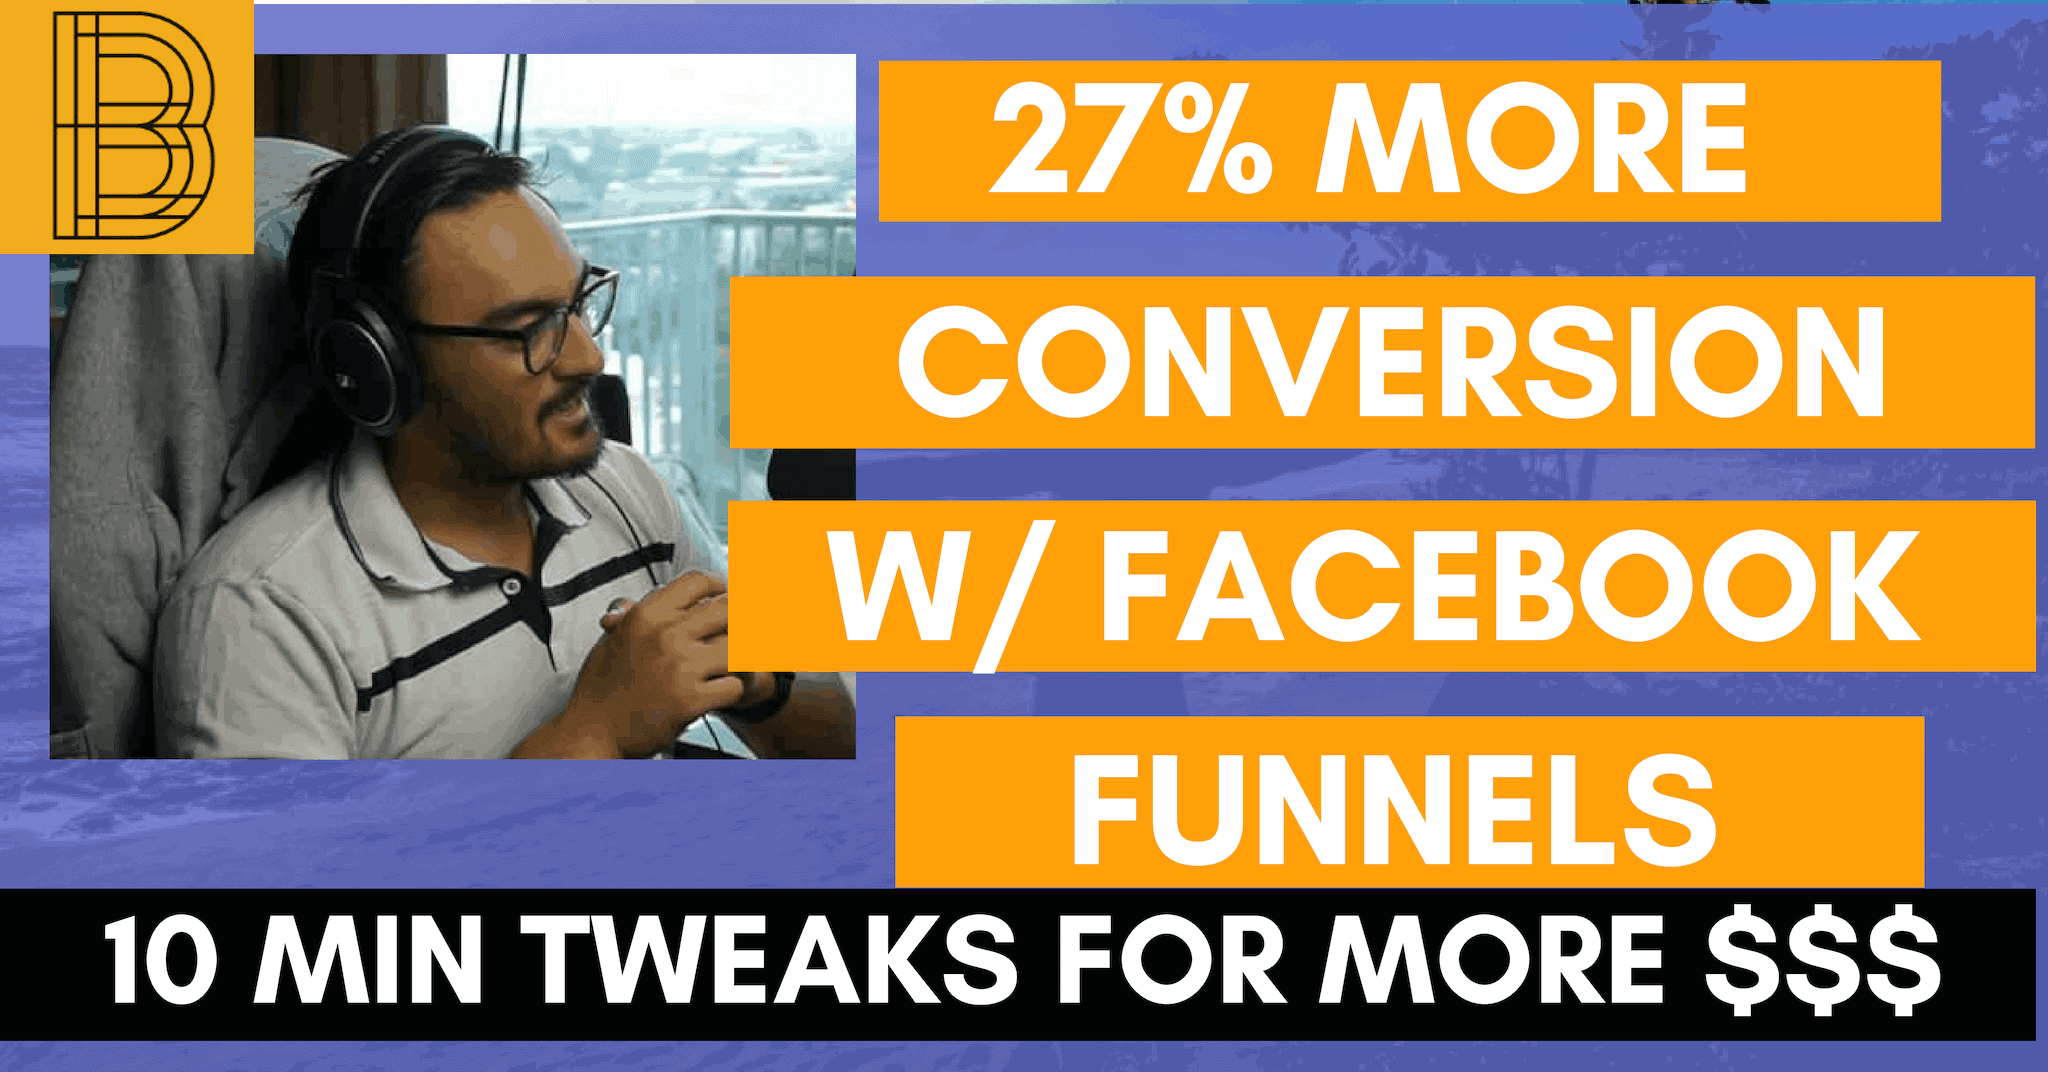 Using Facebook Funnels to optimize your Marketing Funnels